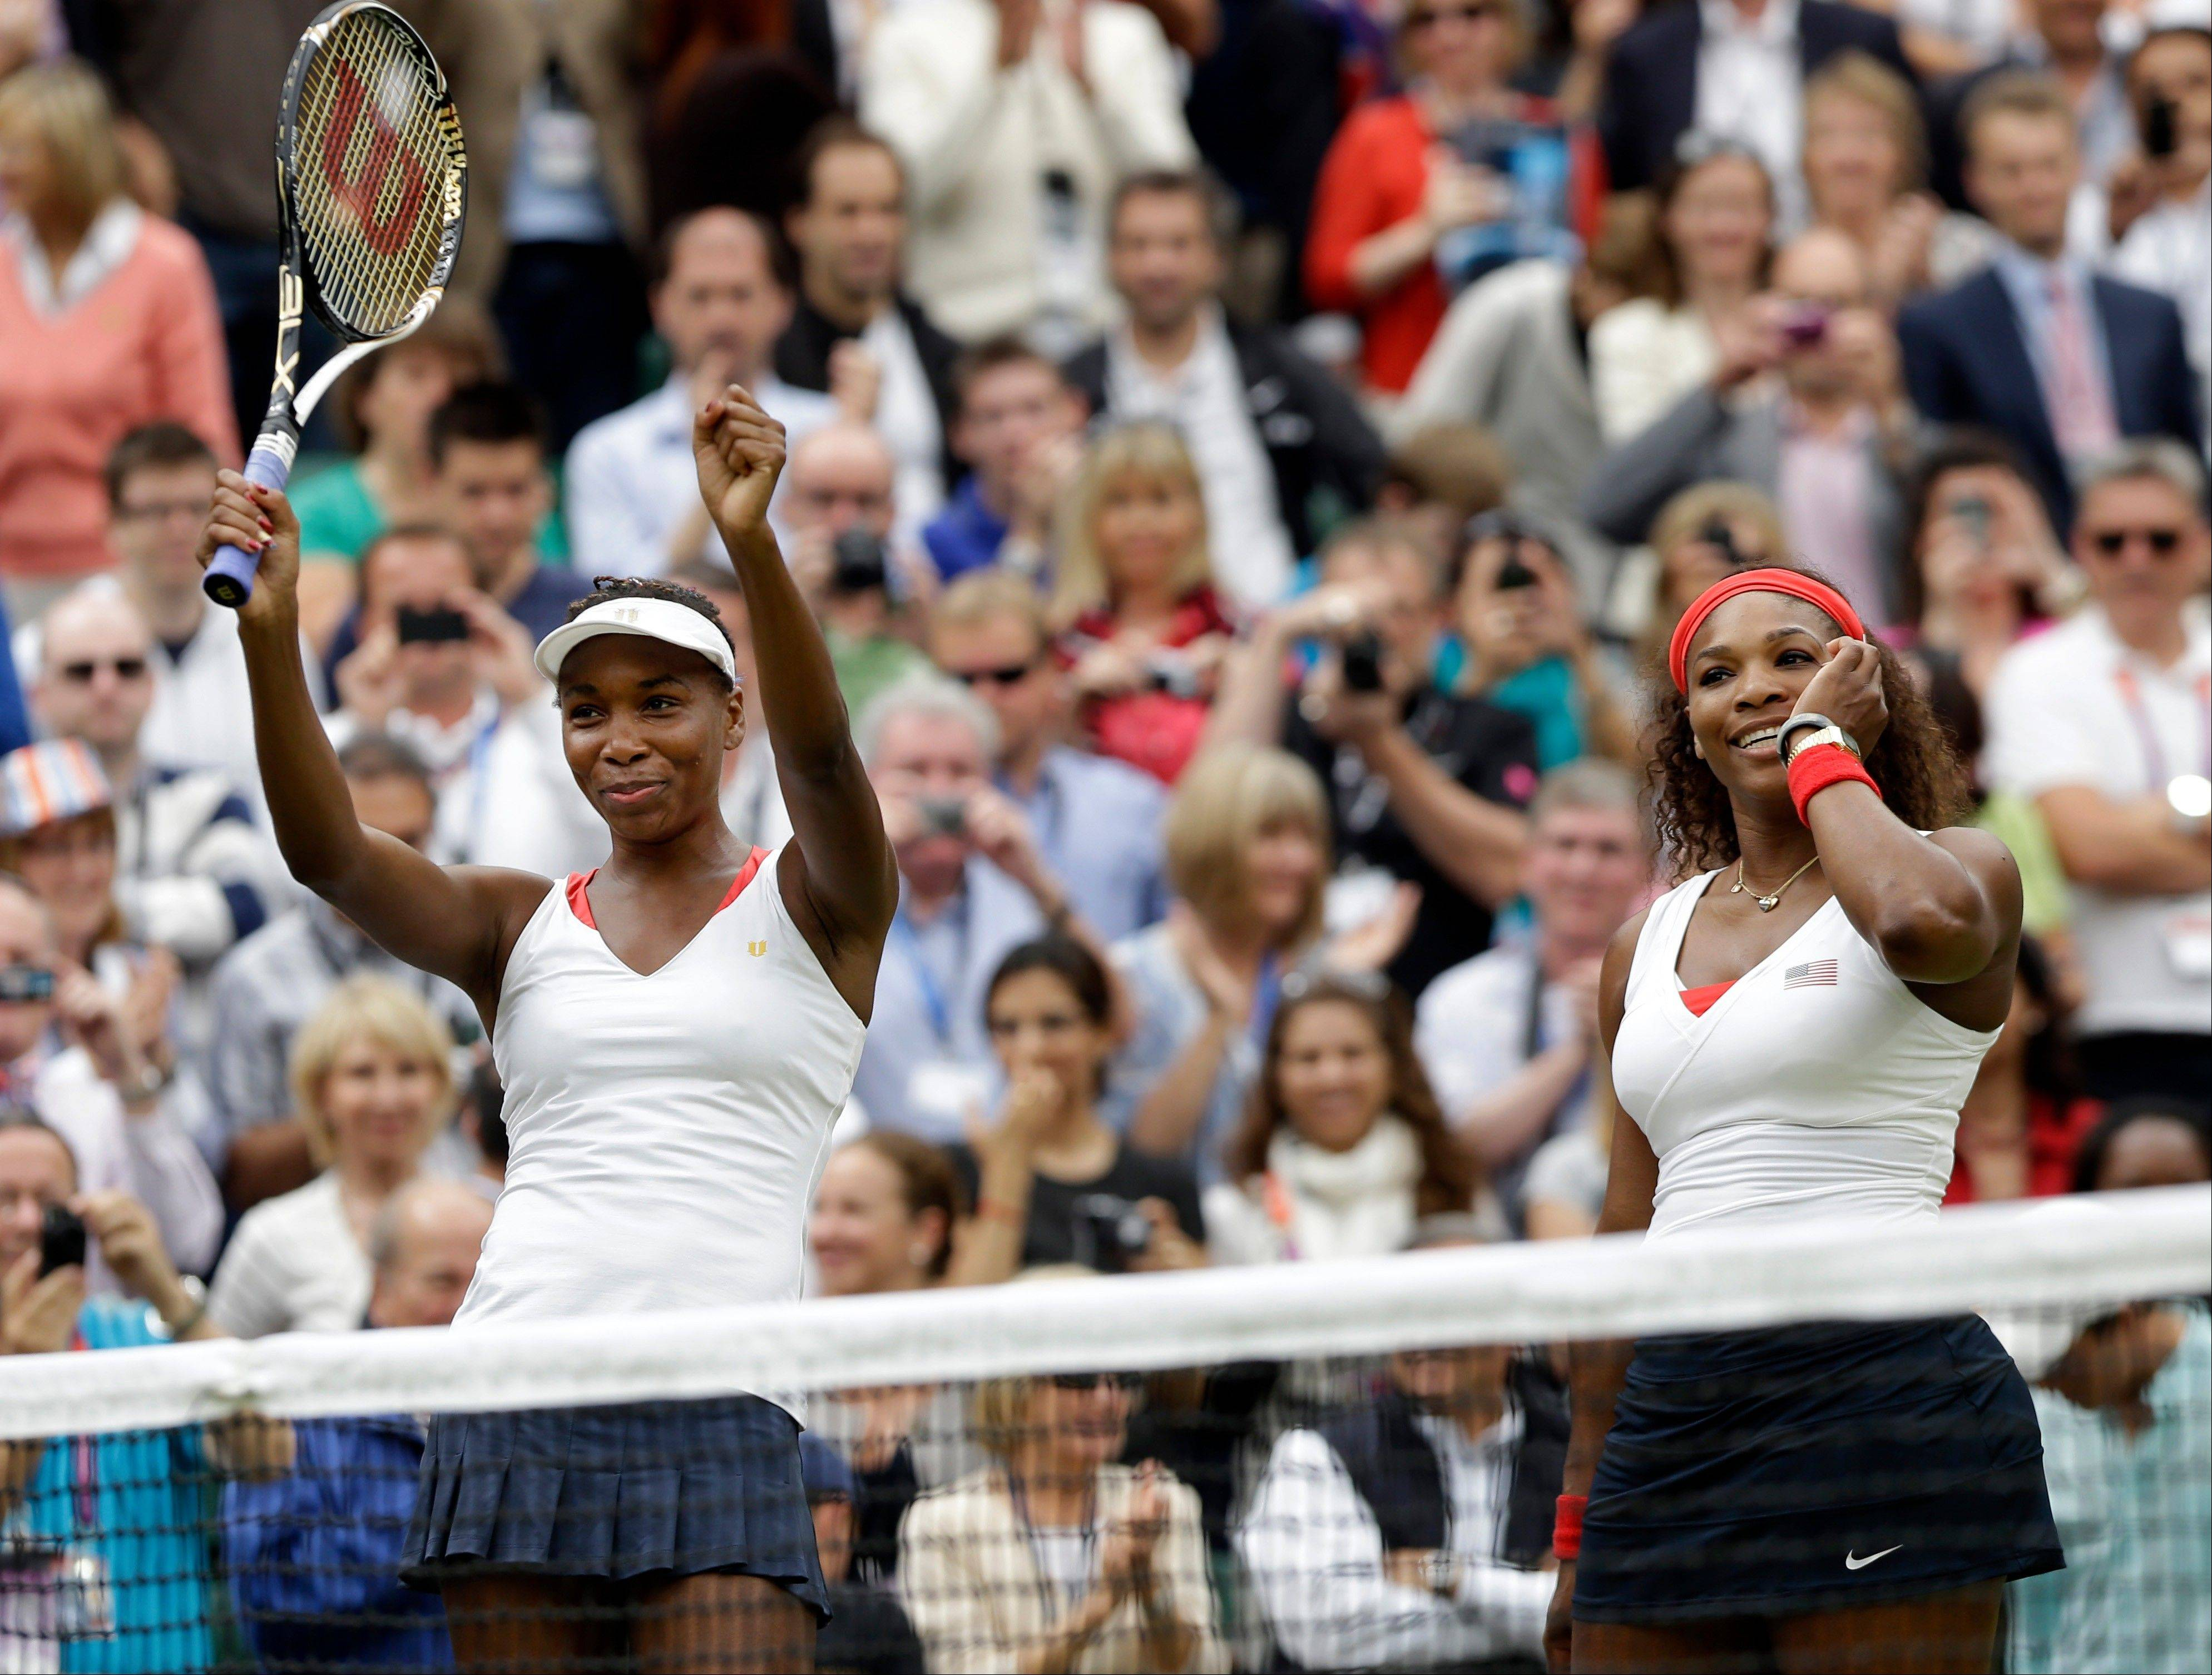 Americans Venus Williams, left, and Serena Williams celebrate their victory against Andrea Hlavackova and Lucie Hradecka of the Czech Republic in the Olympic gold medal women's doubles match Sunday at Wimbledon.